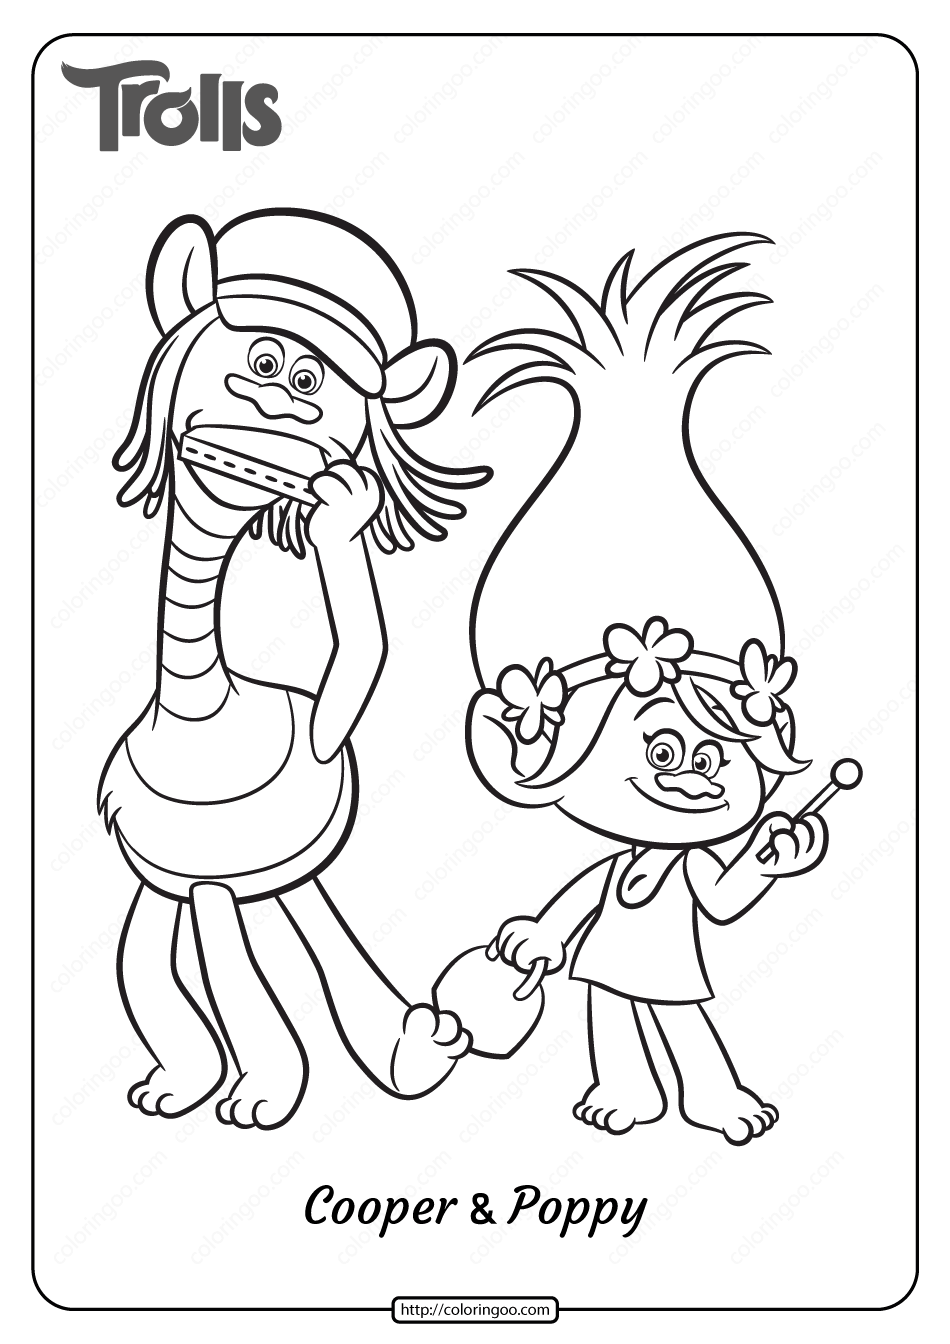 Printable Trolls Cooper And Poppy Coloring Page Poppy Coloring Page Disney Coloring Pages Cartoon Coloring Pages